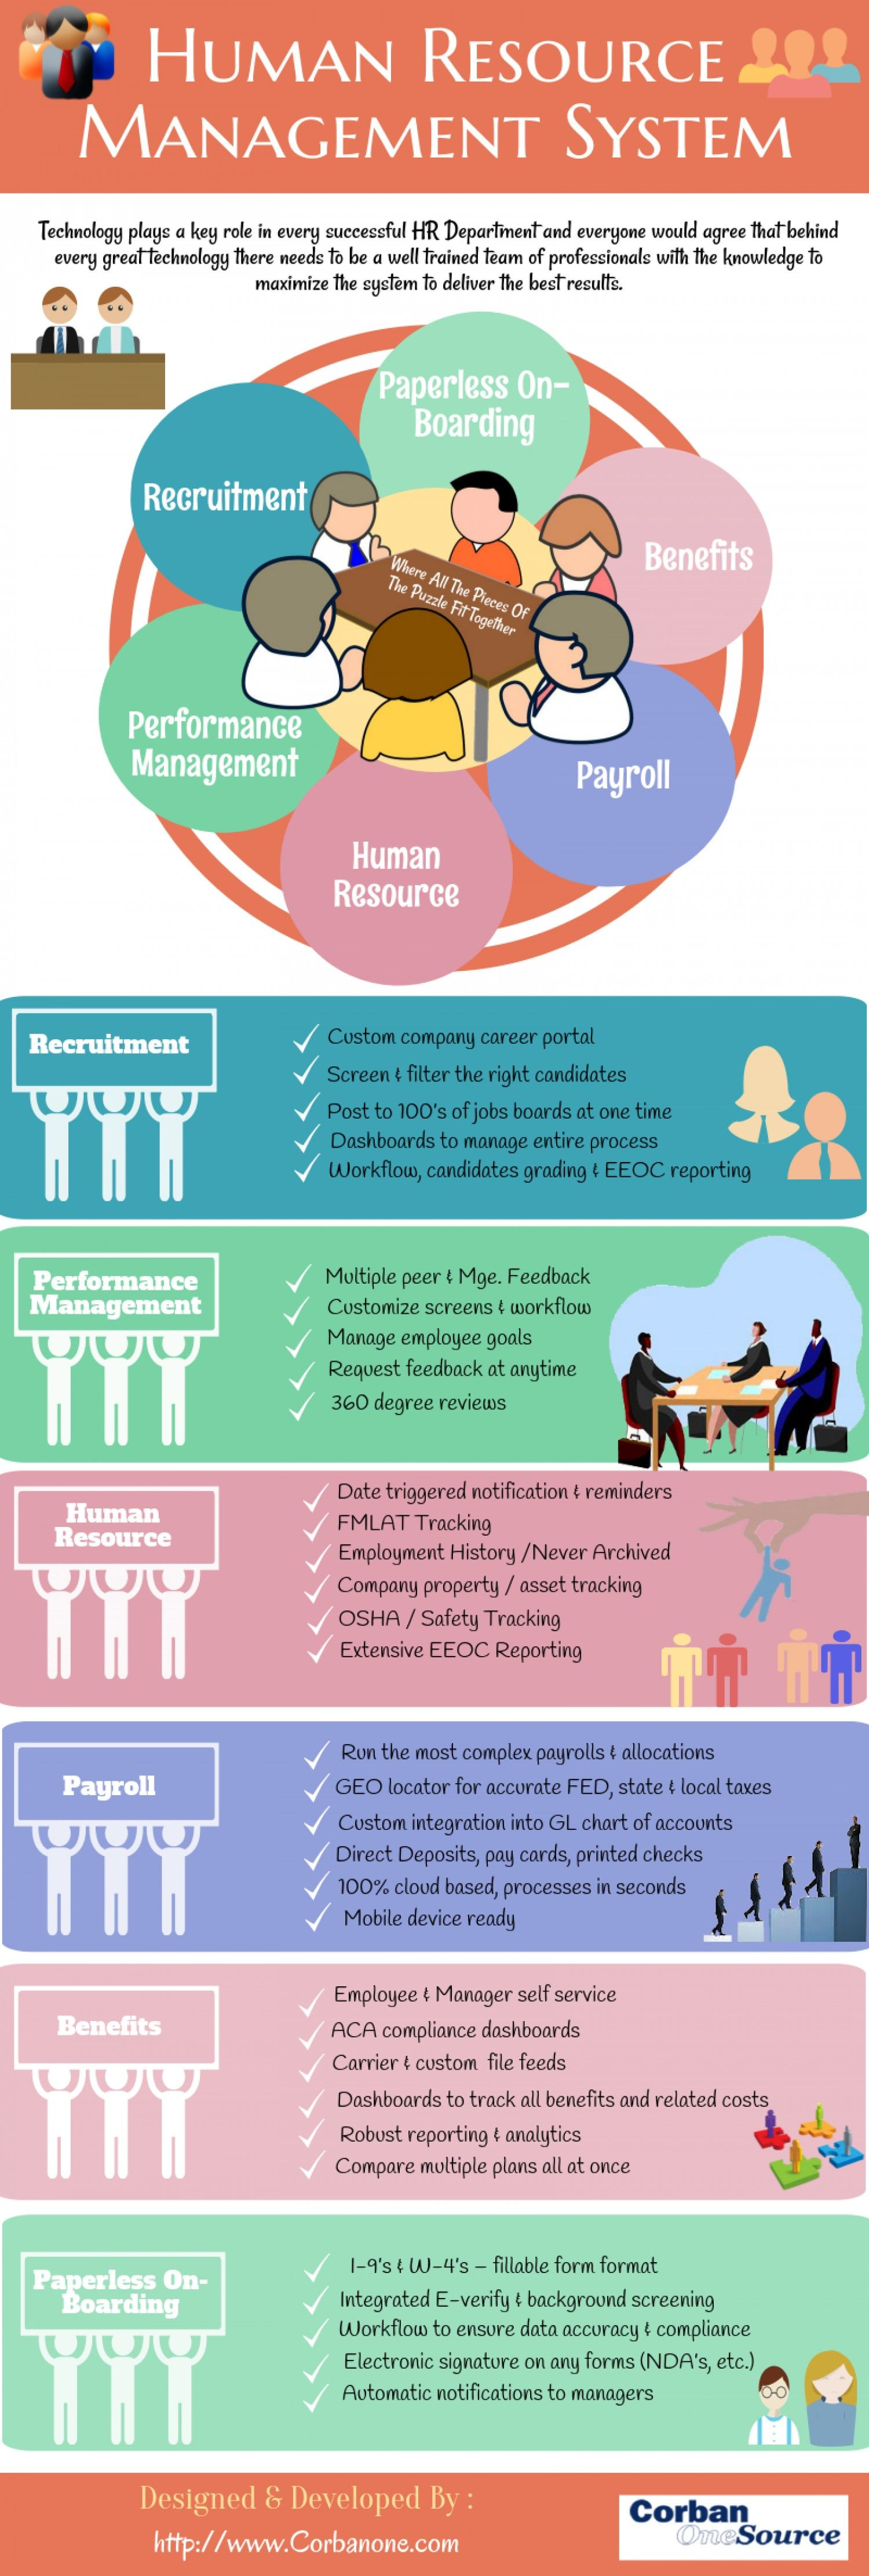 Human Resource Management System Visual Ly Human Resource Management Human Resource Management System Human Resources